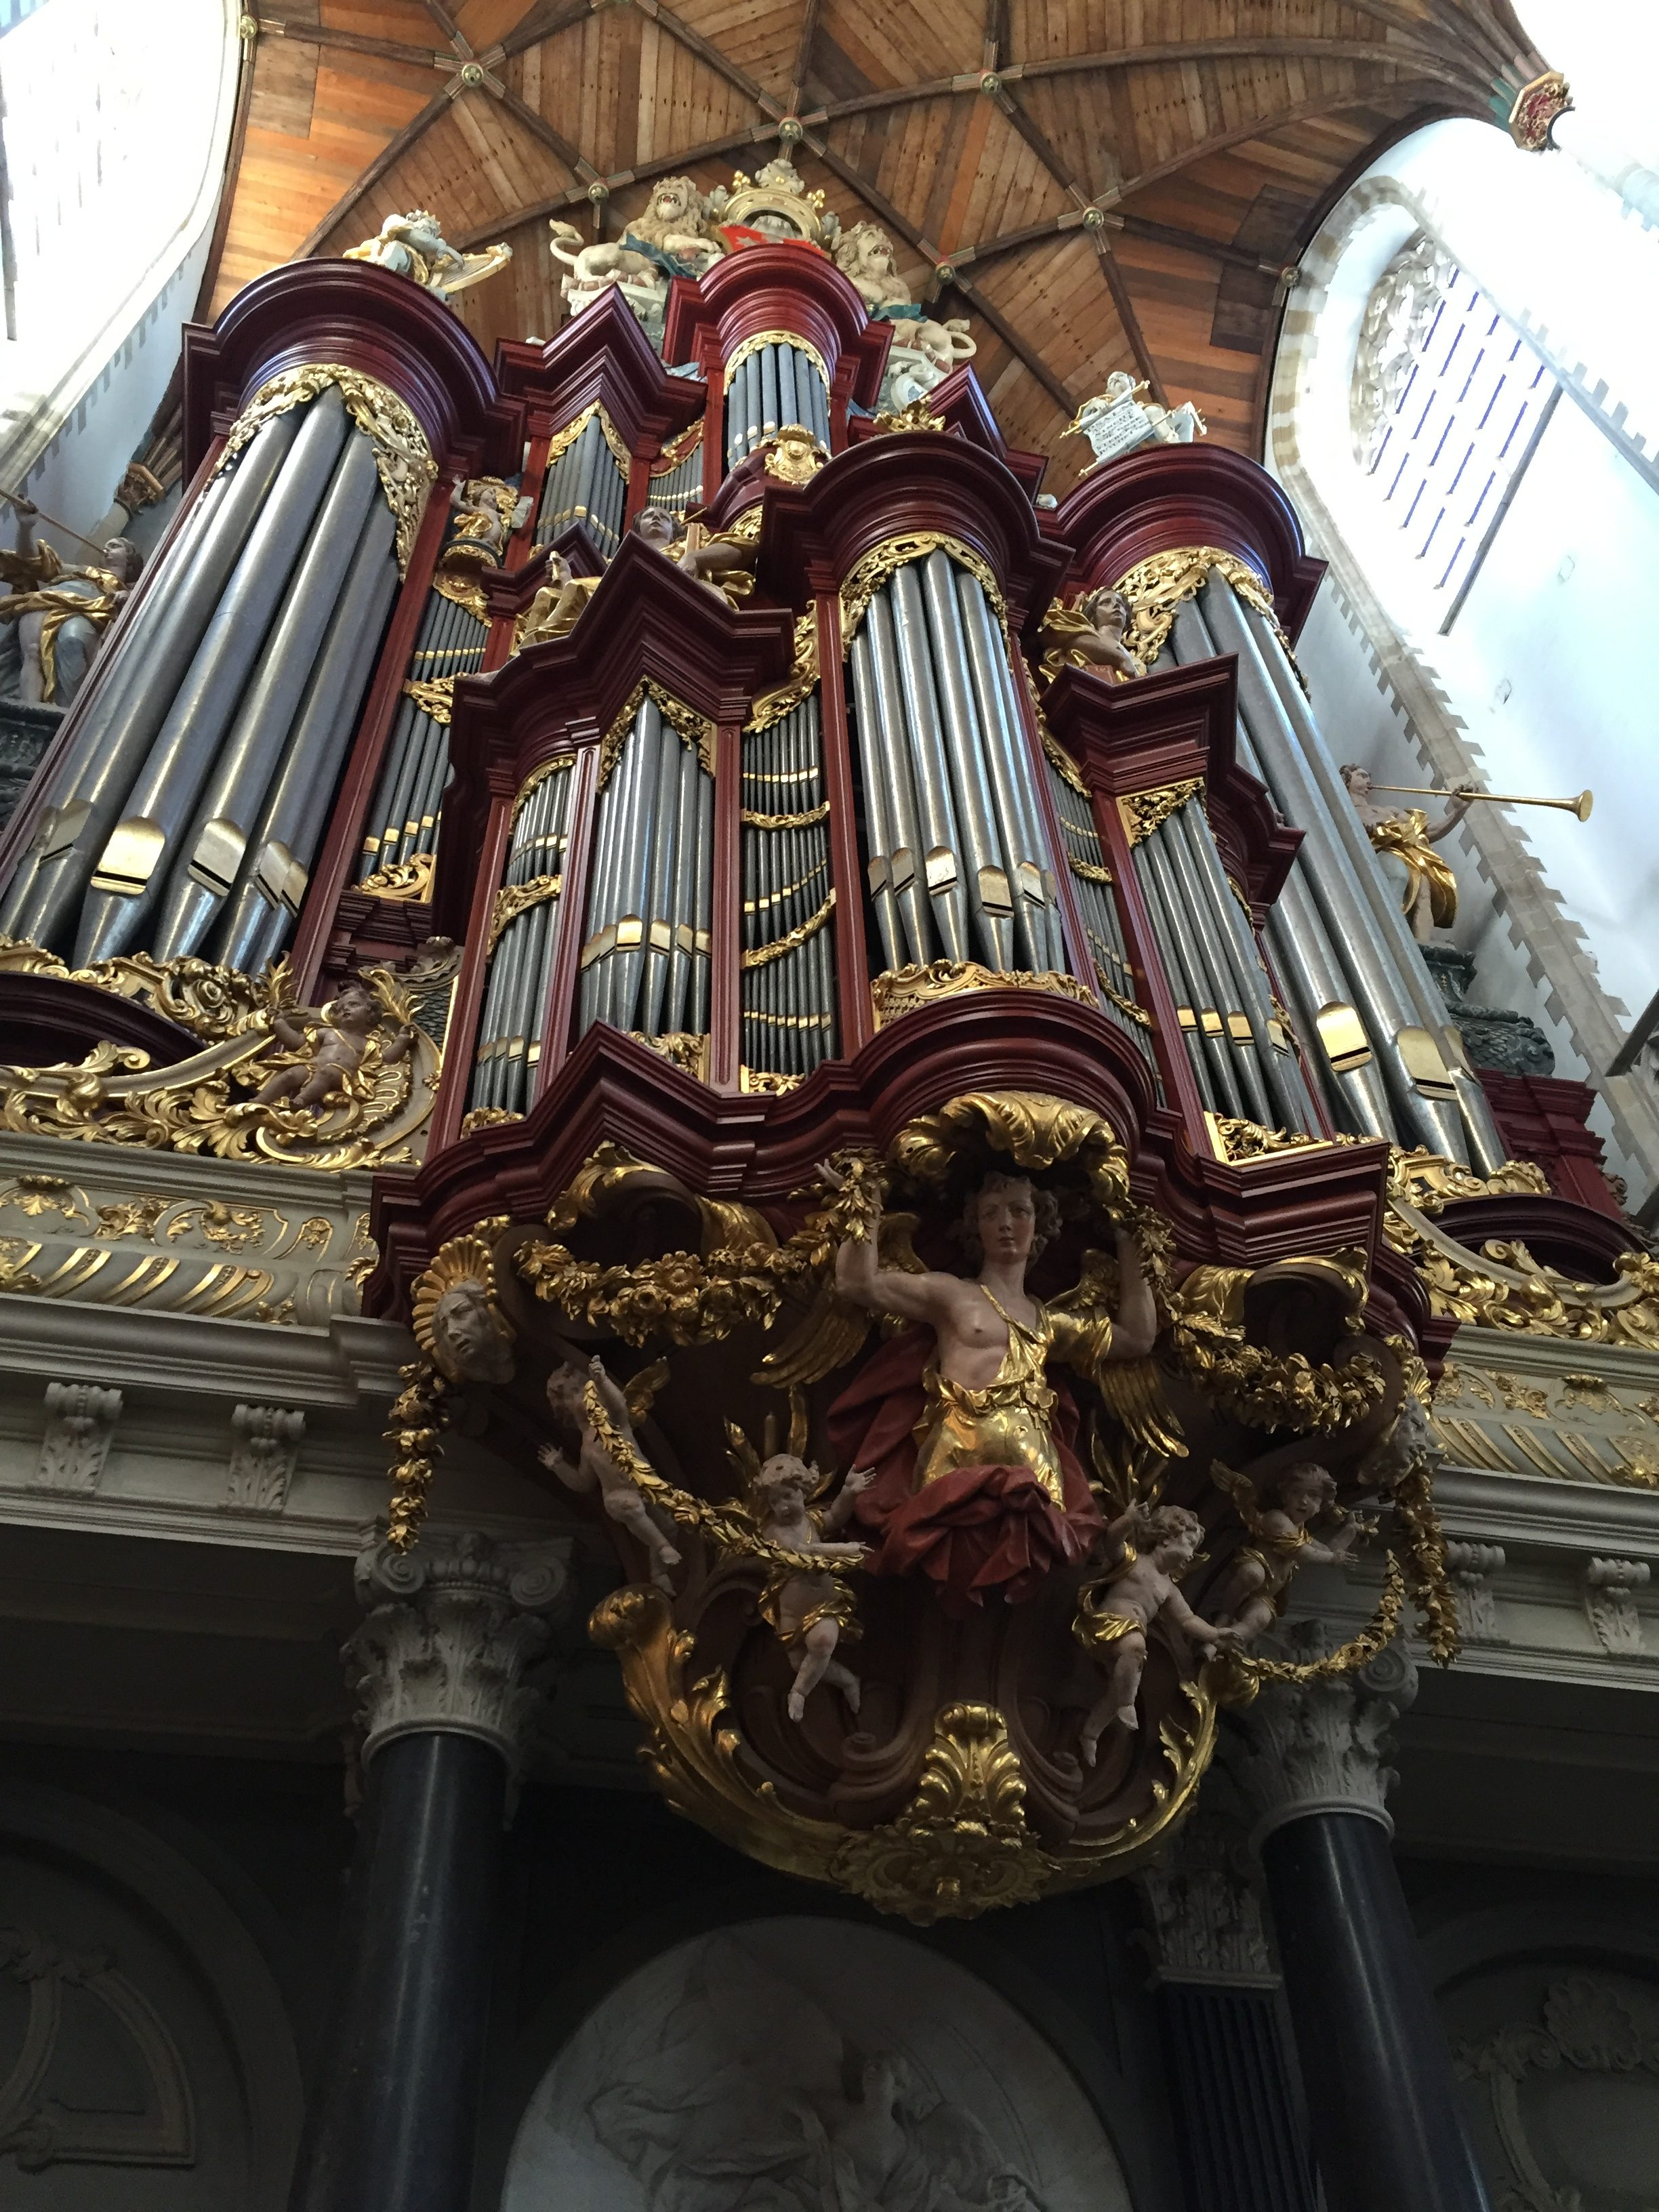 Organ in the Grote Kerke